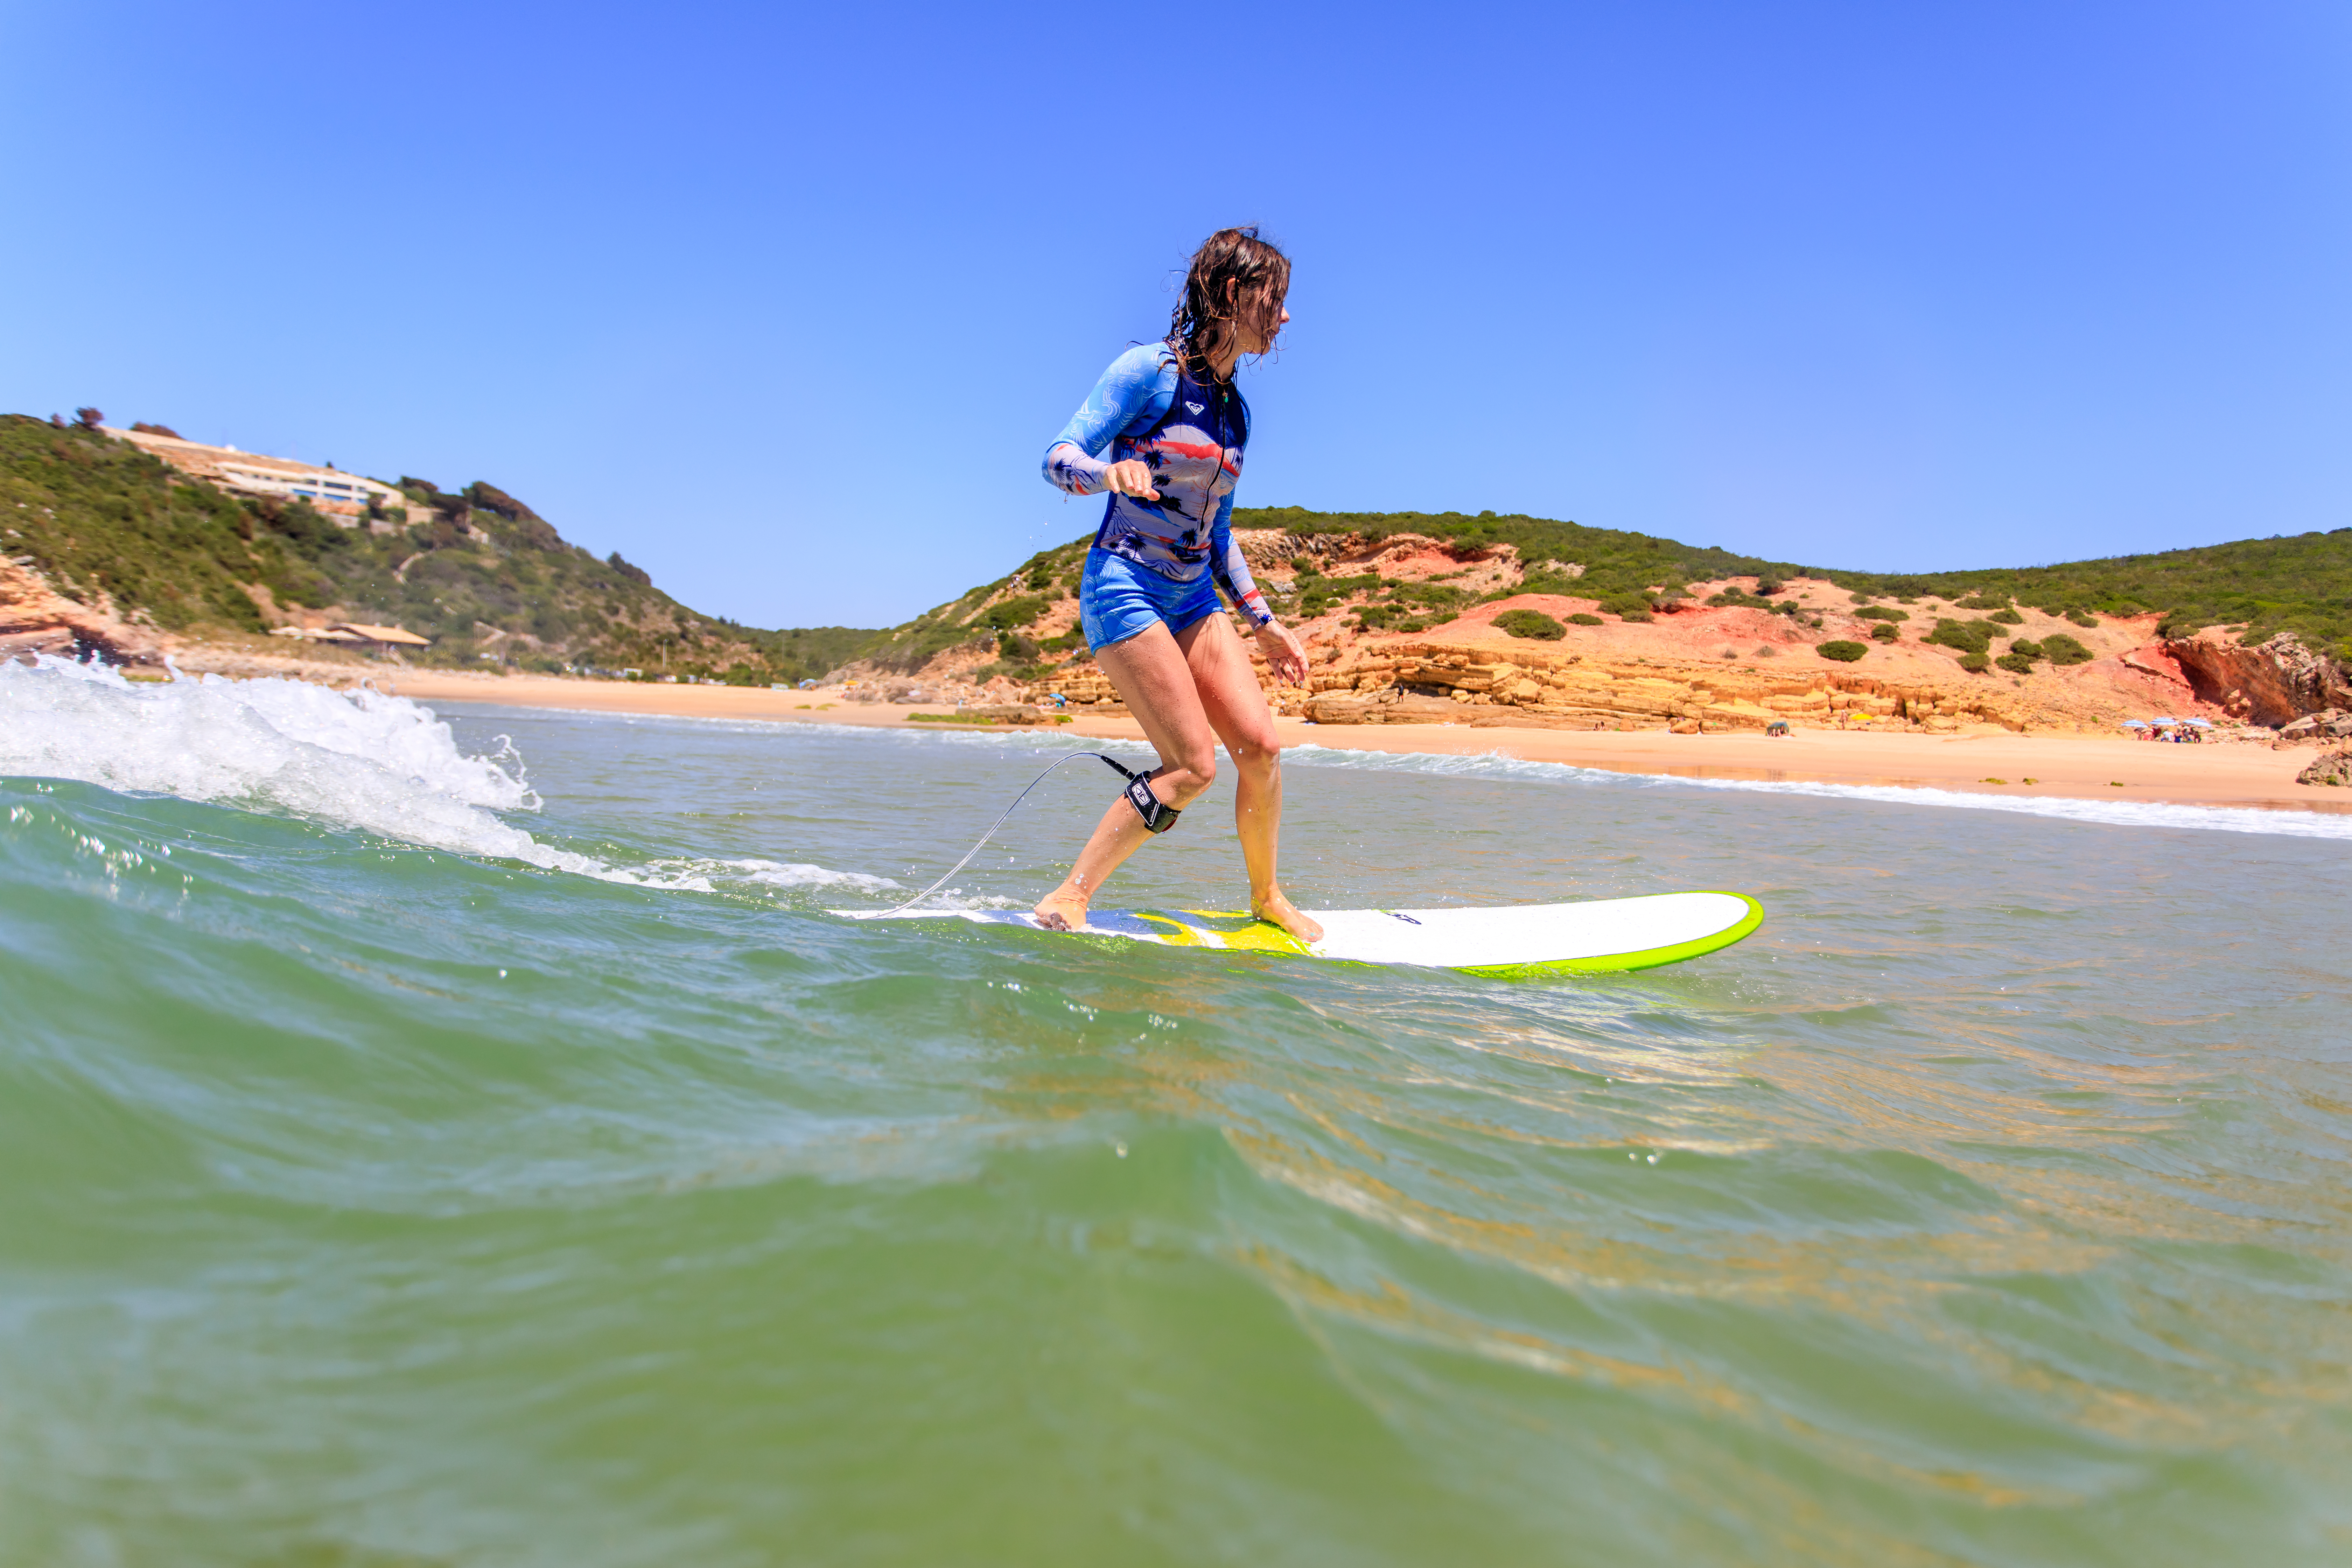 surf yoga portugal retreat saltwater yoga ROXY longboard waves soul healthy